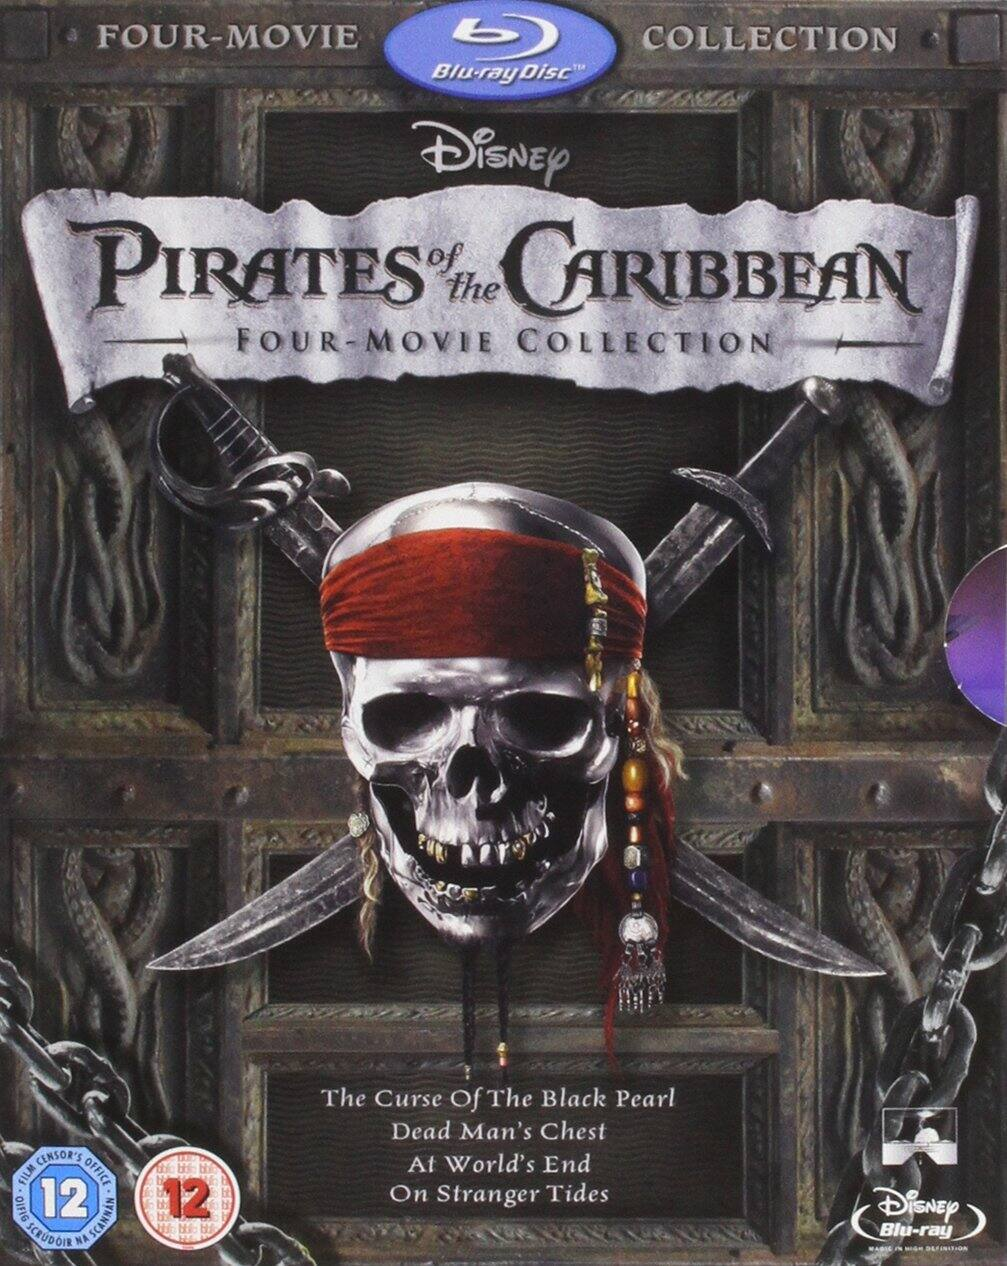 Pirates of the Caribbean: Four-Movie Collection [Blu-ray] $16.50 Shipped